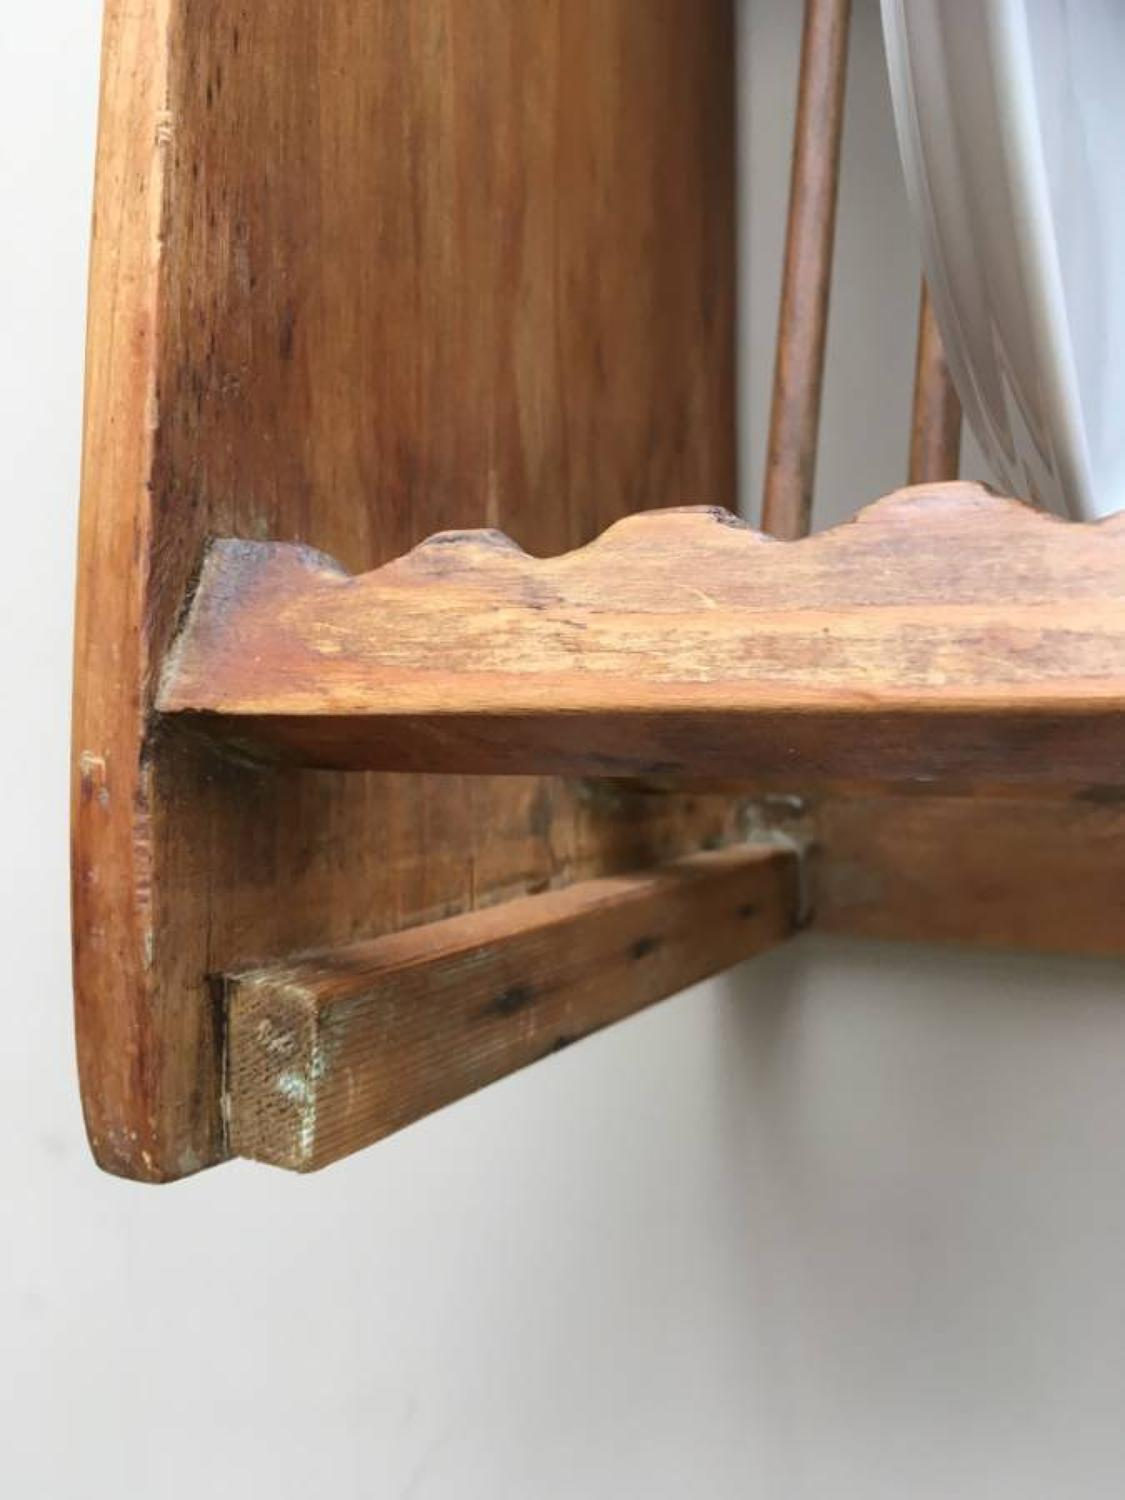 ... Late Victorian Stripped Pine Plate Rack with Top Cup u0026 Saucers Racks - picture 4 ... & Late Victorian Stripped Pine Plate Rack with Top Cup u0026 Saucers Racks ...